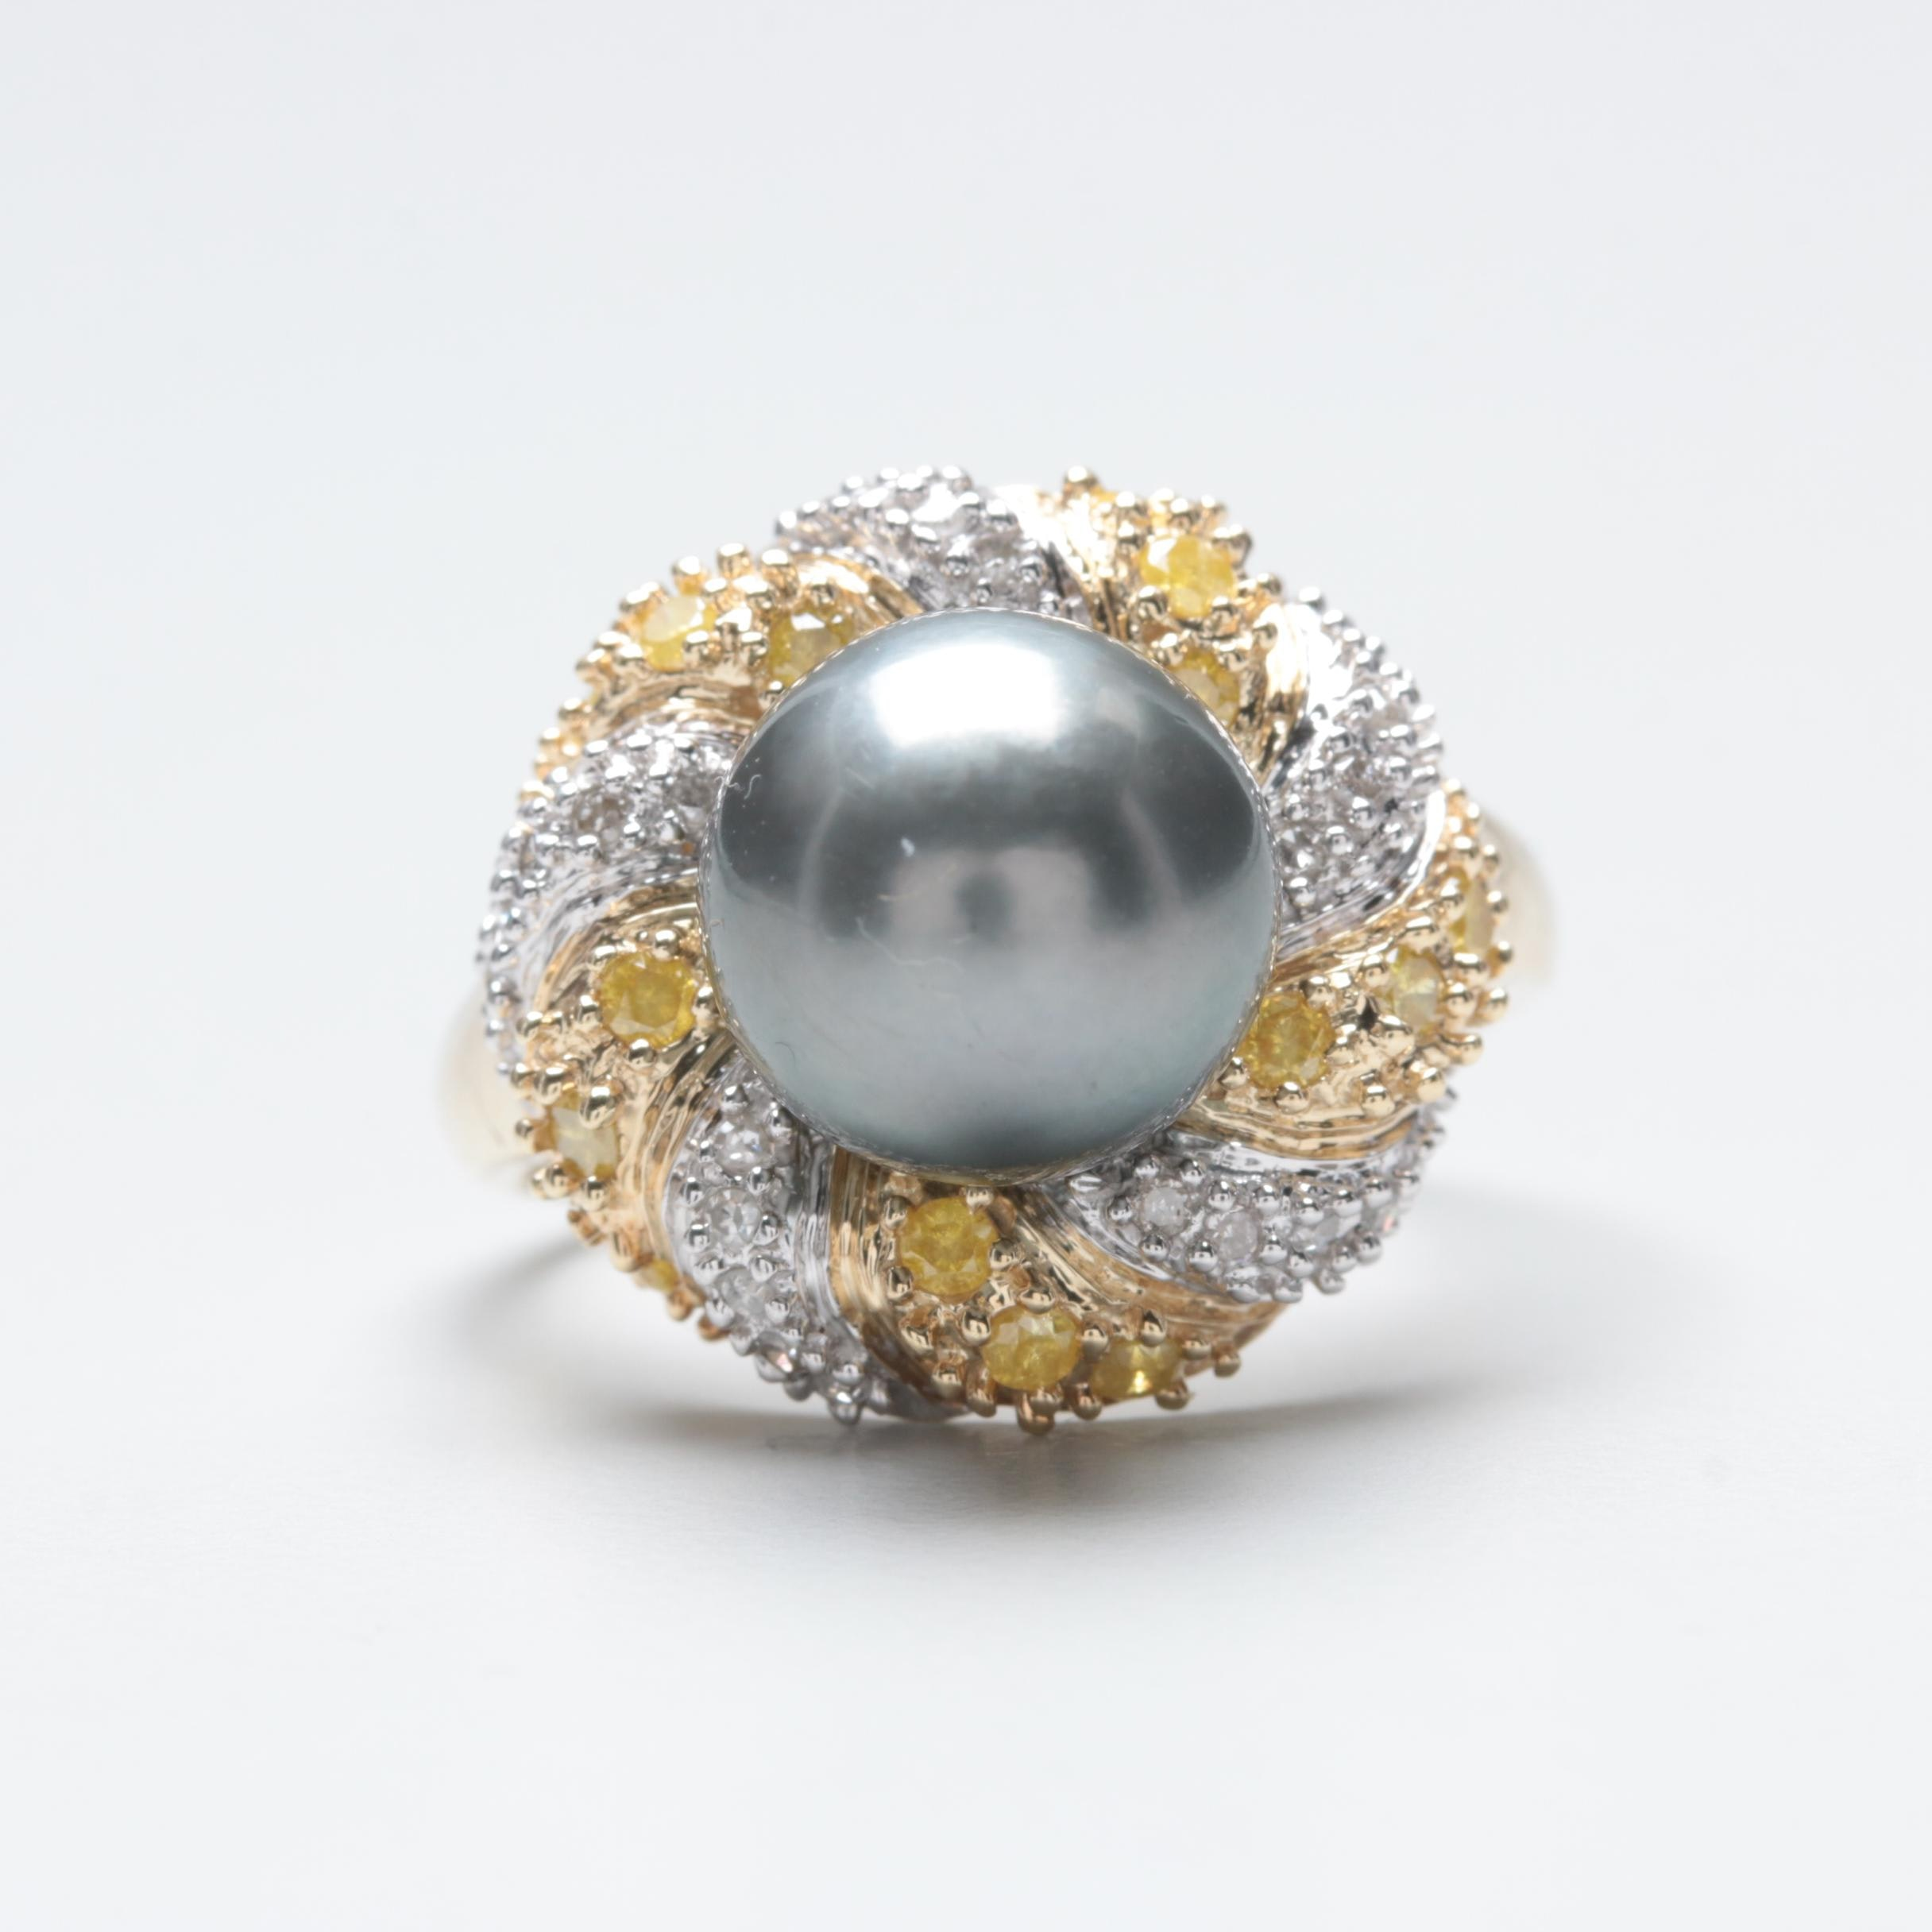 10K Yellow and White Gold Accented Pearl and Diamond Ring